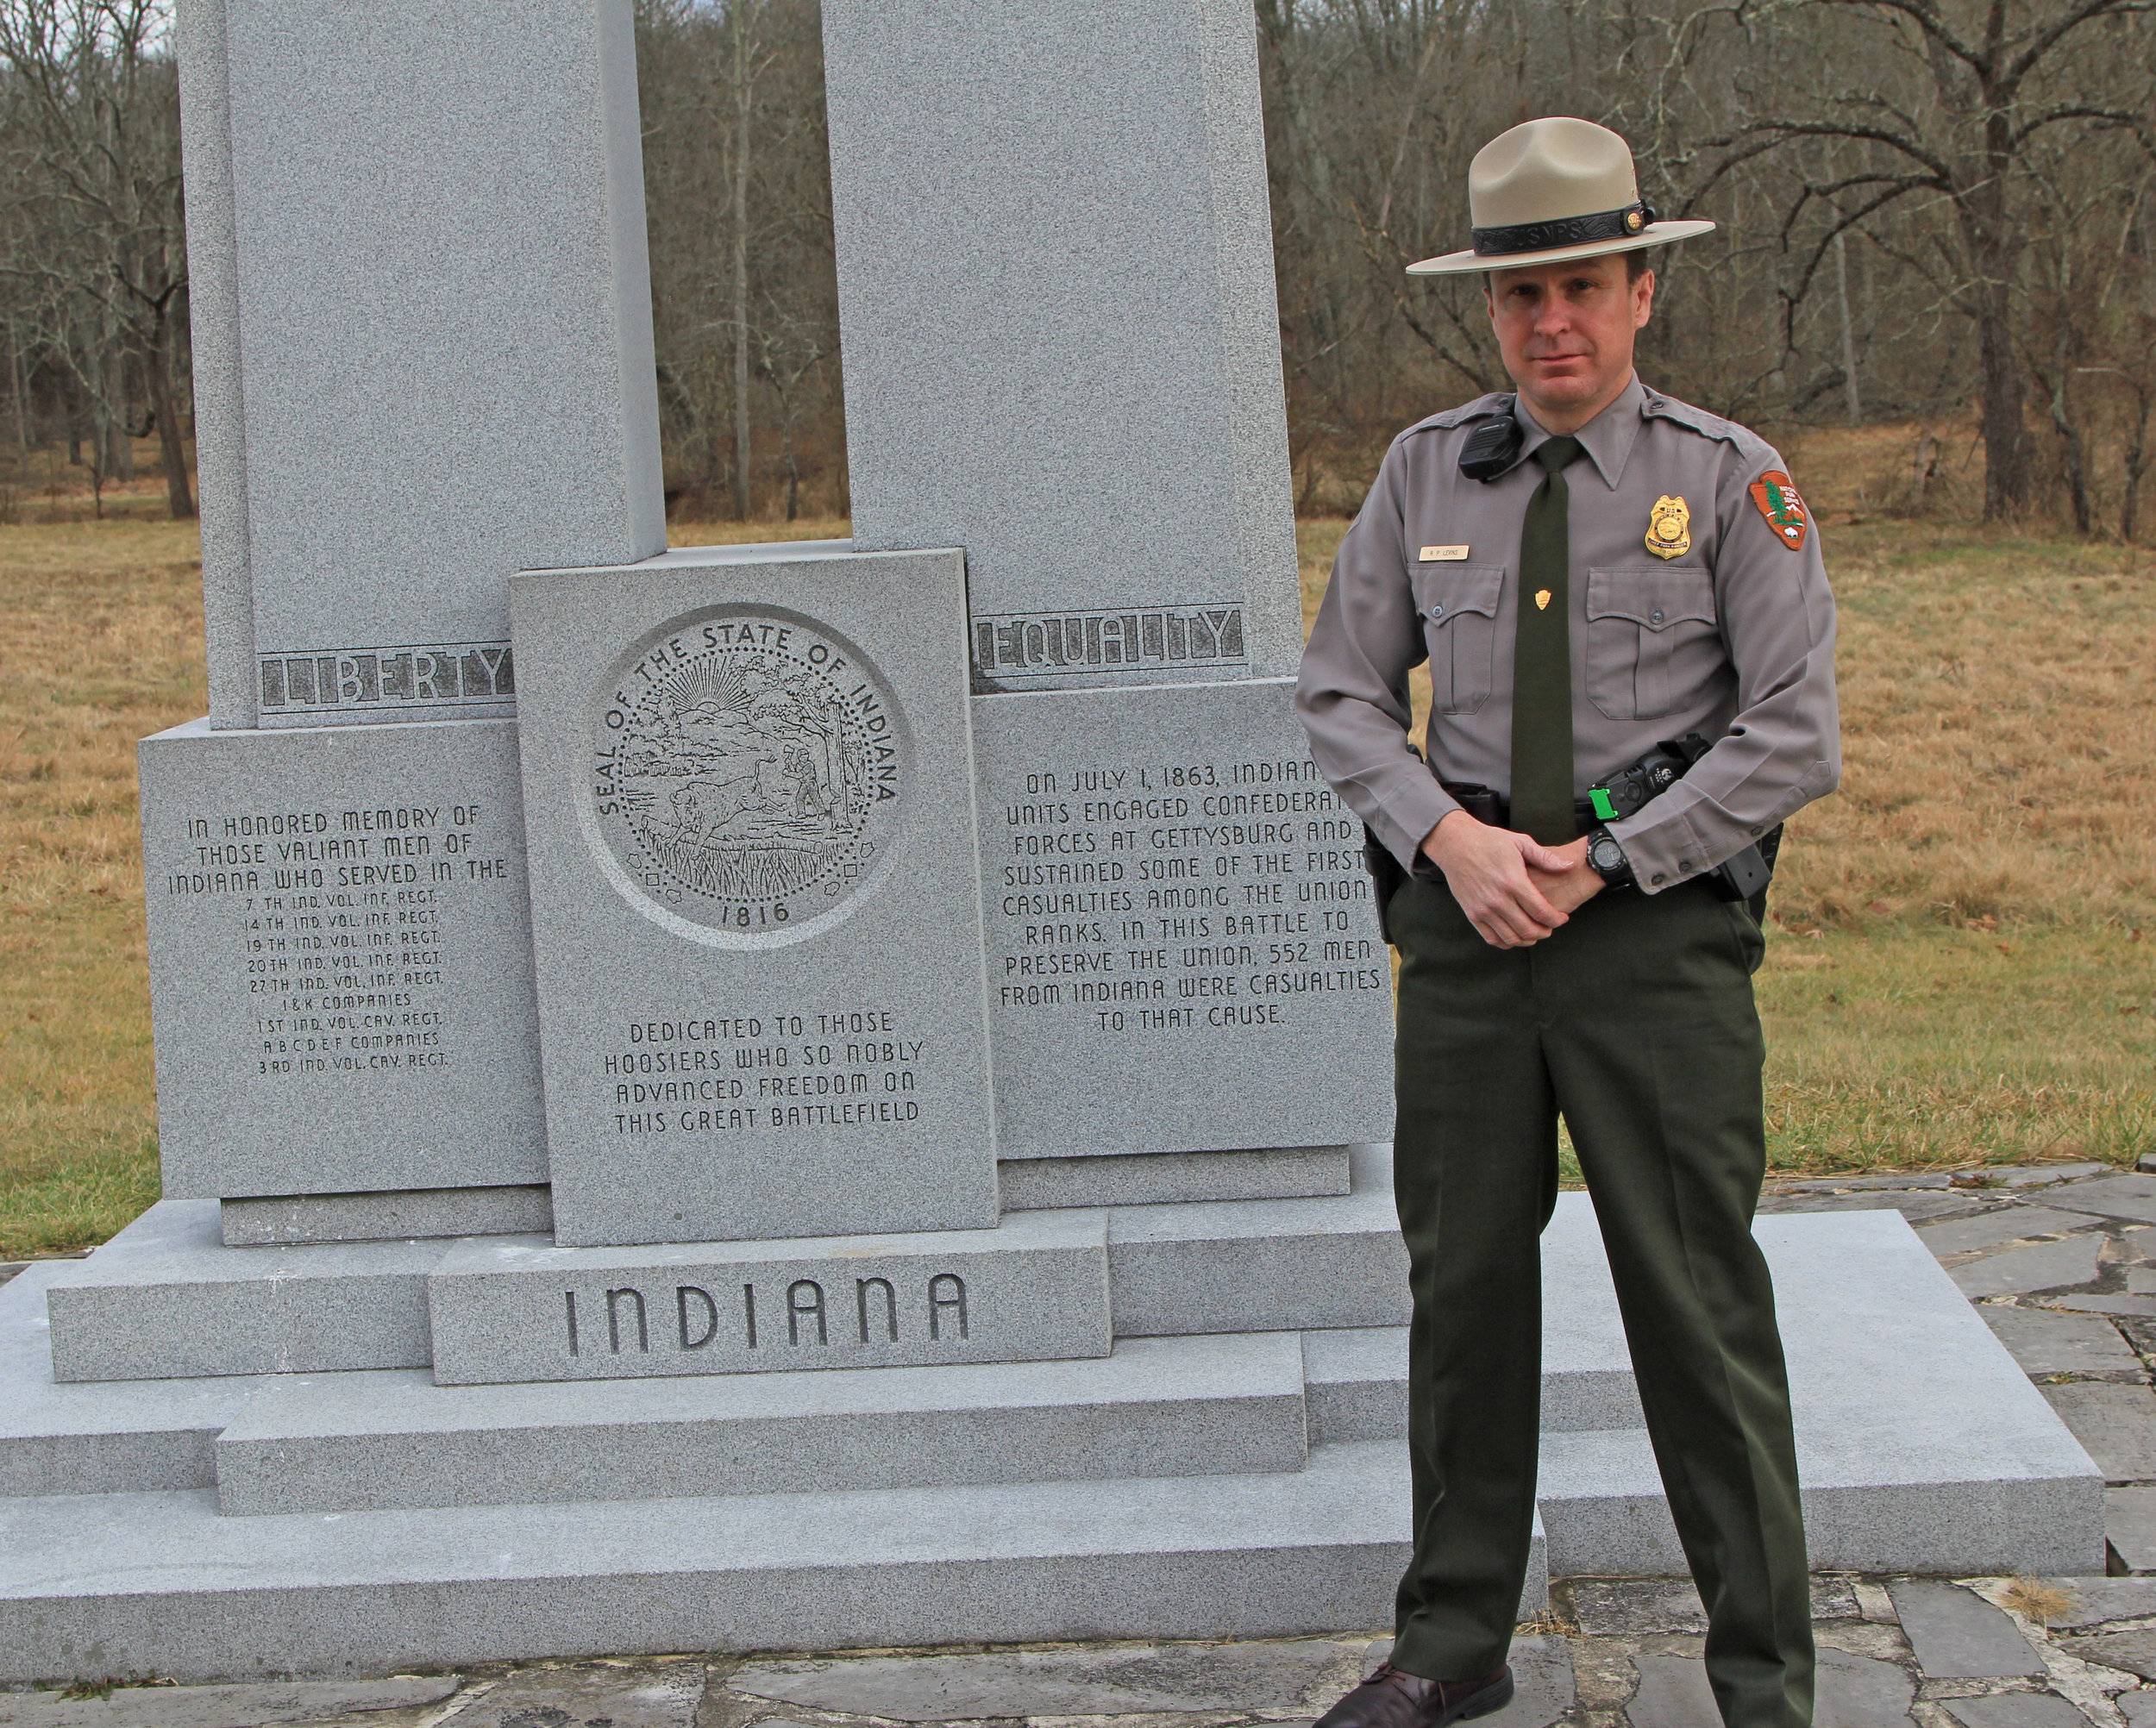 Me as Chief ranger of Gettysburg National Military Park in 2014.